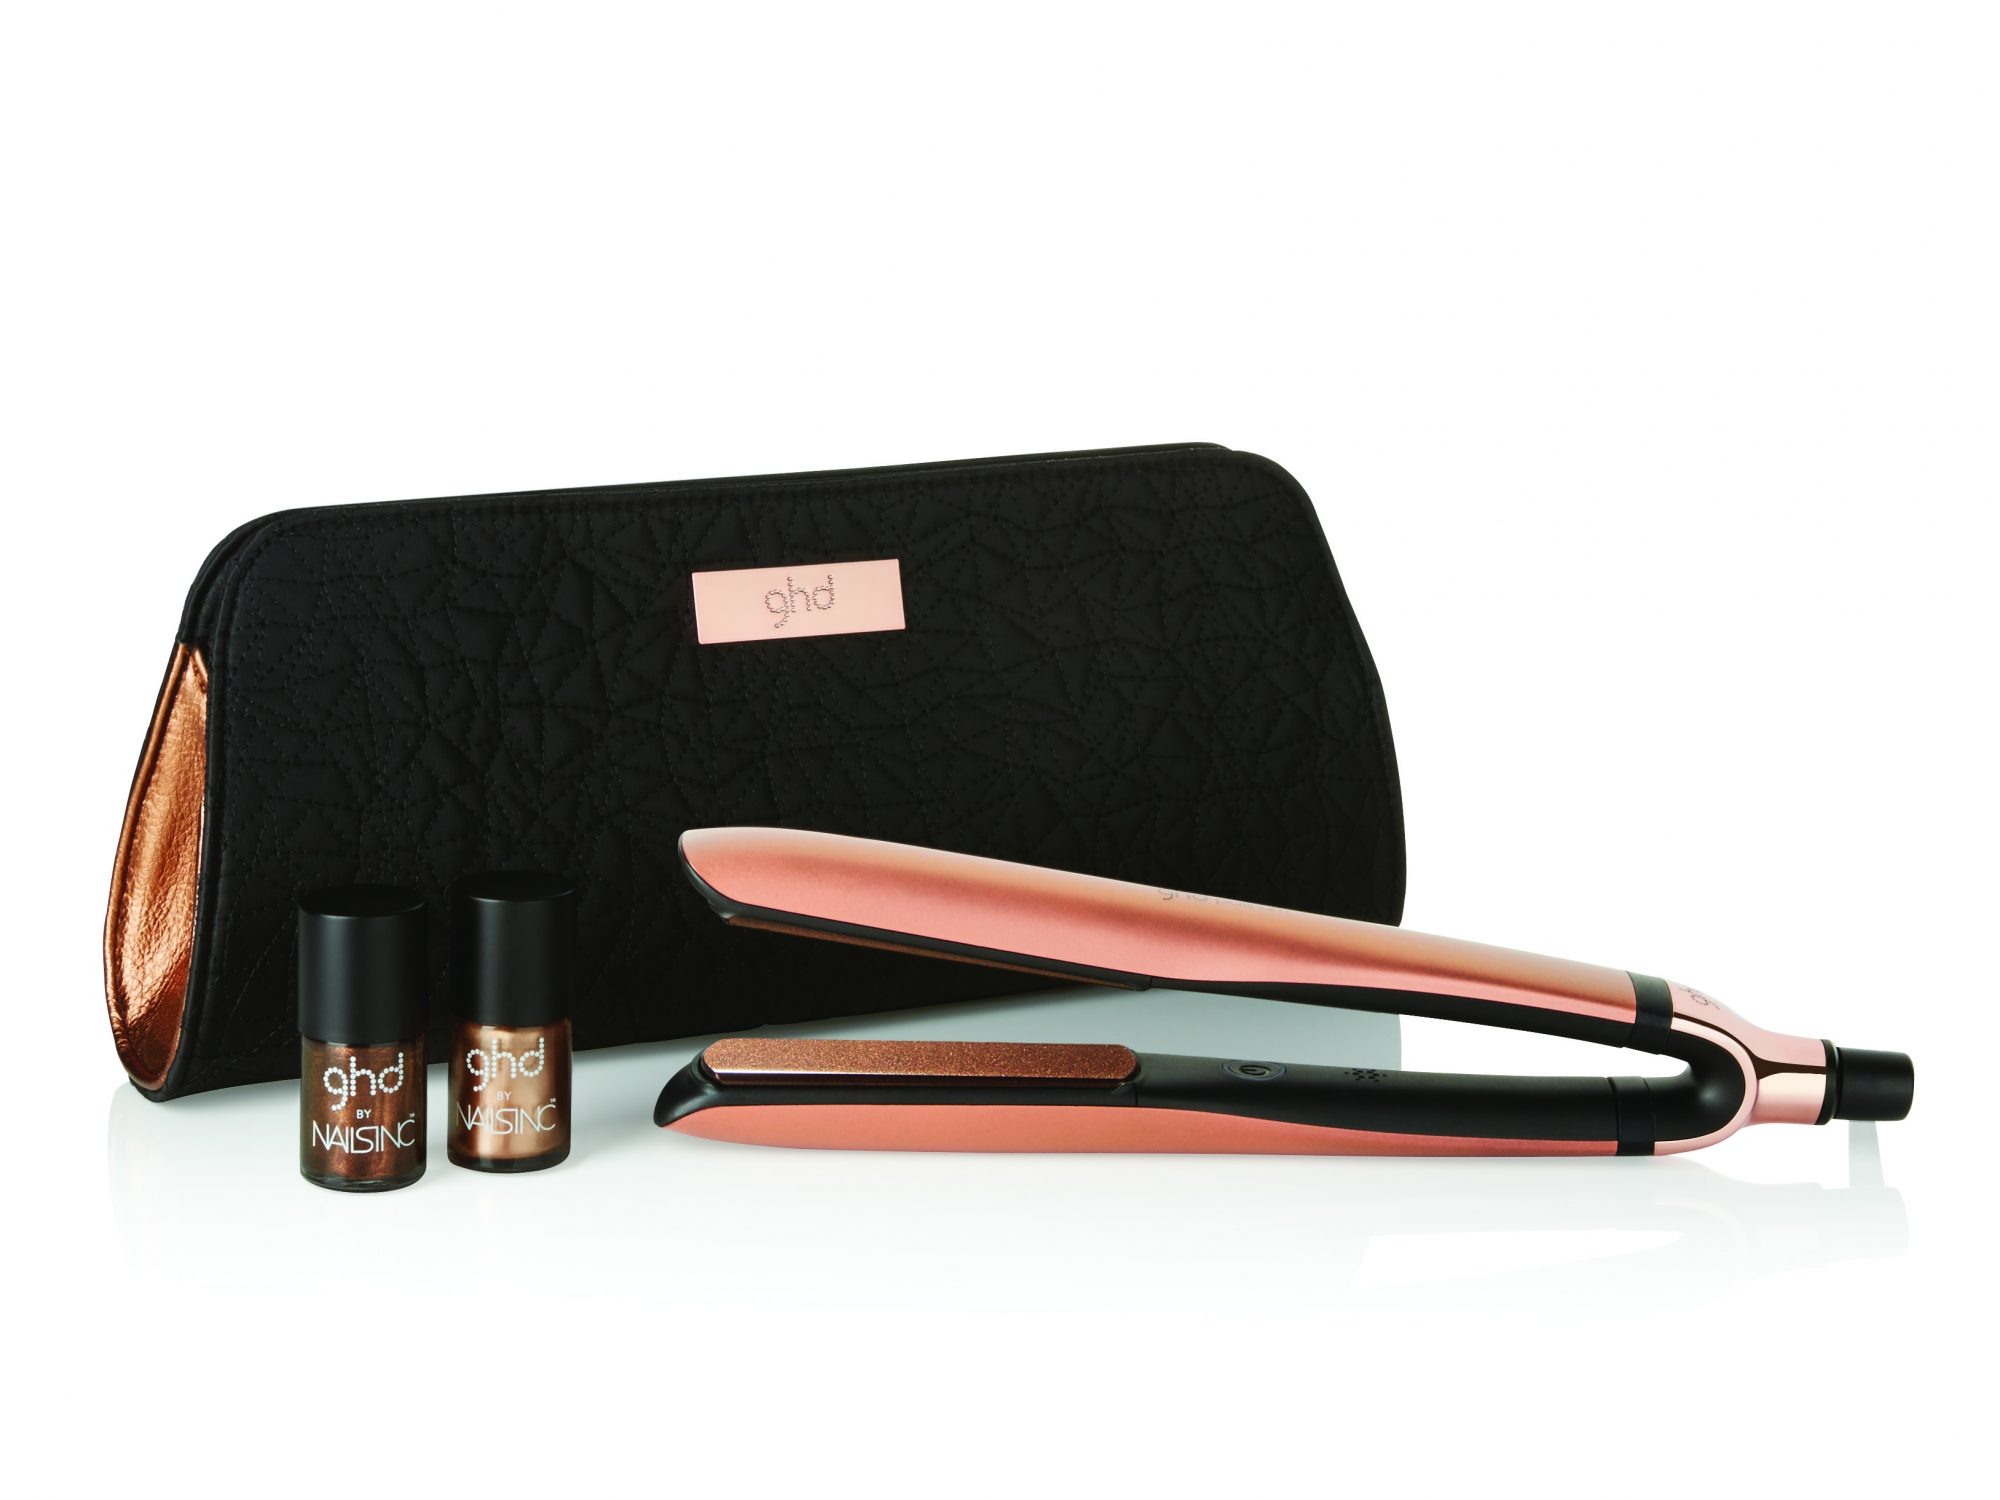 GHD Rose Gold styler set